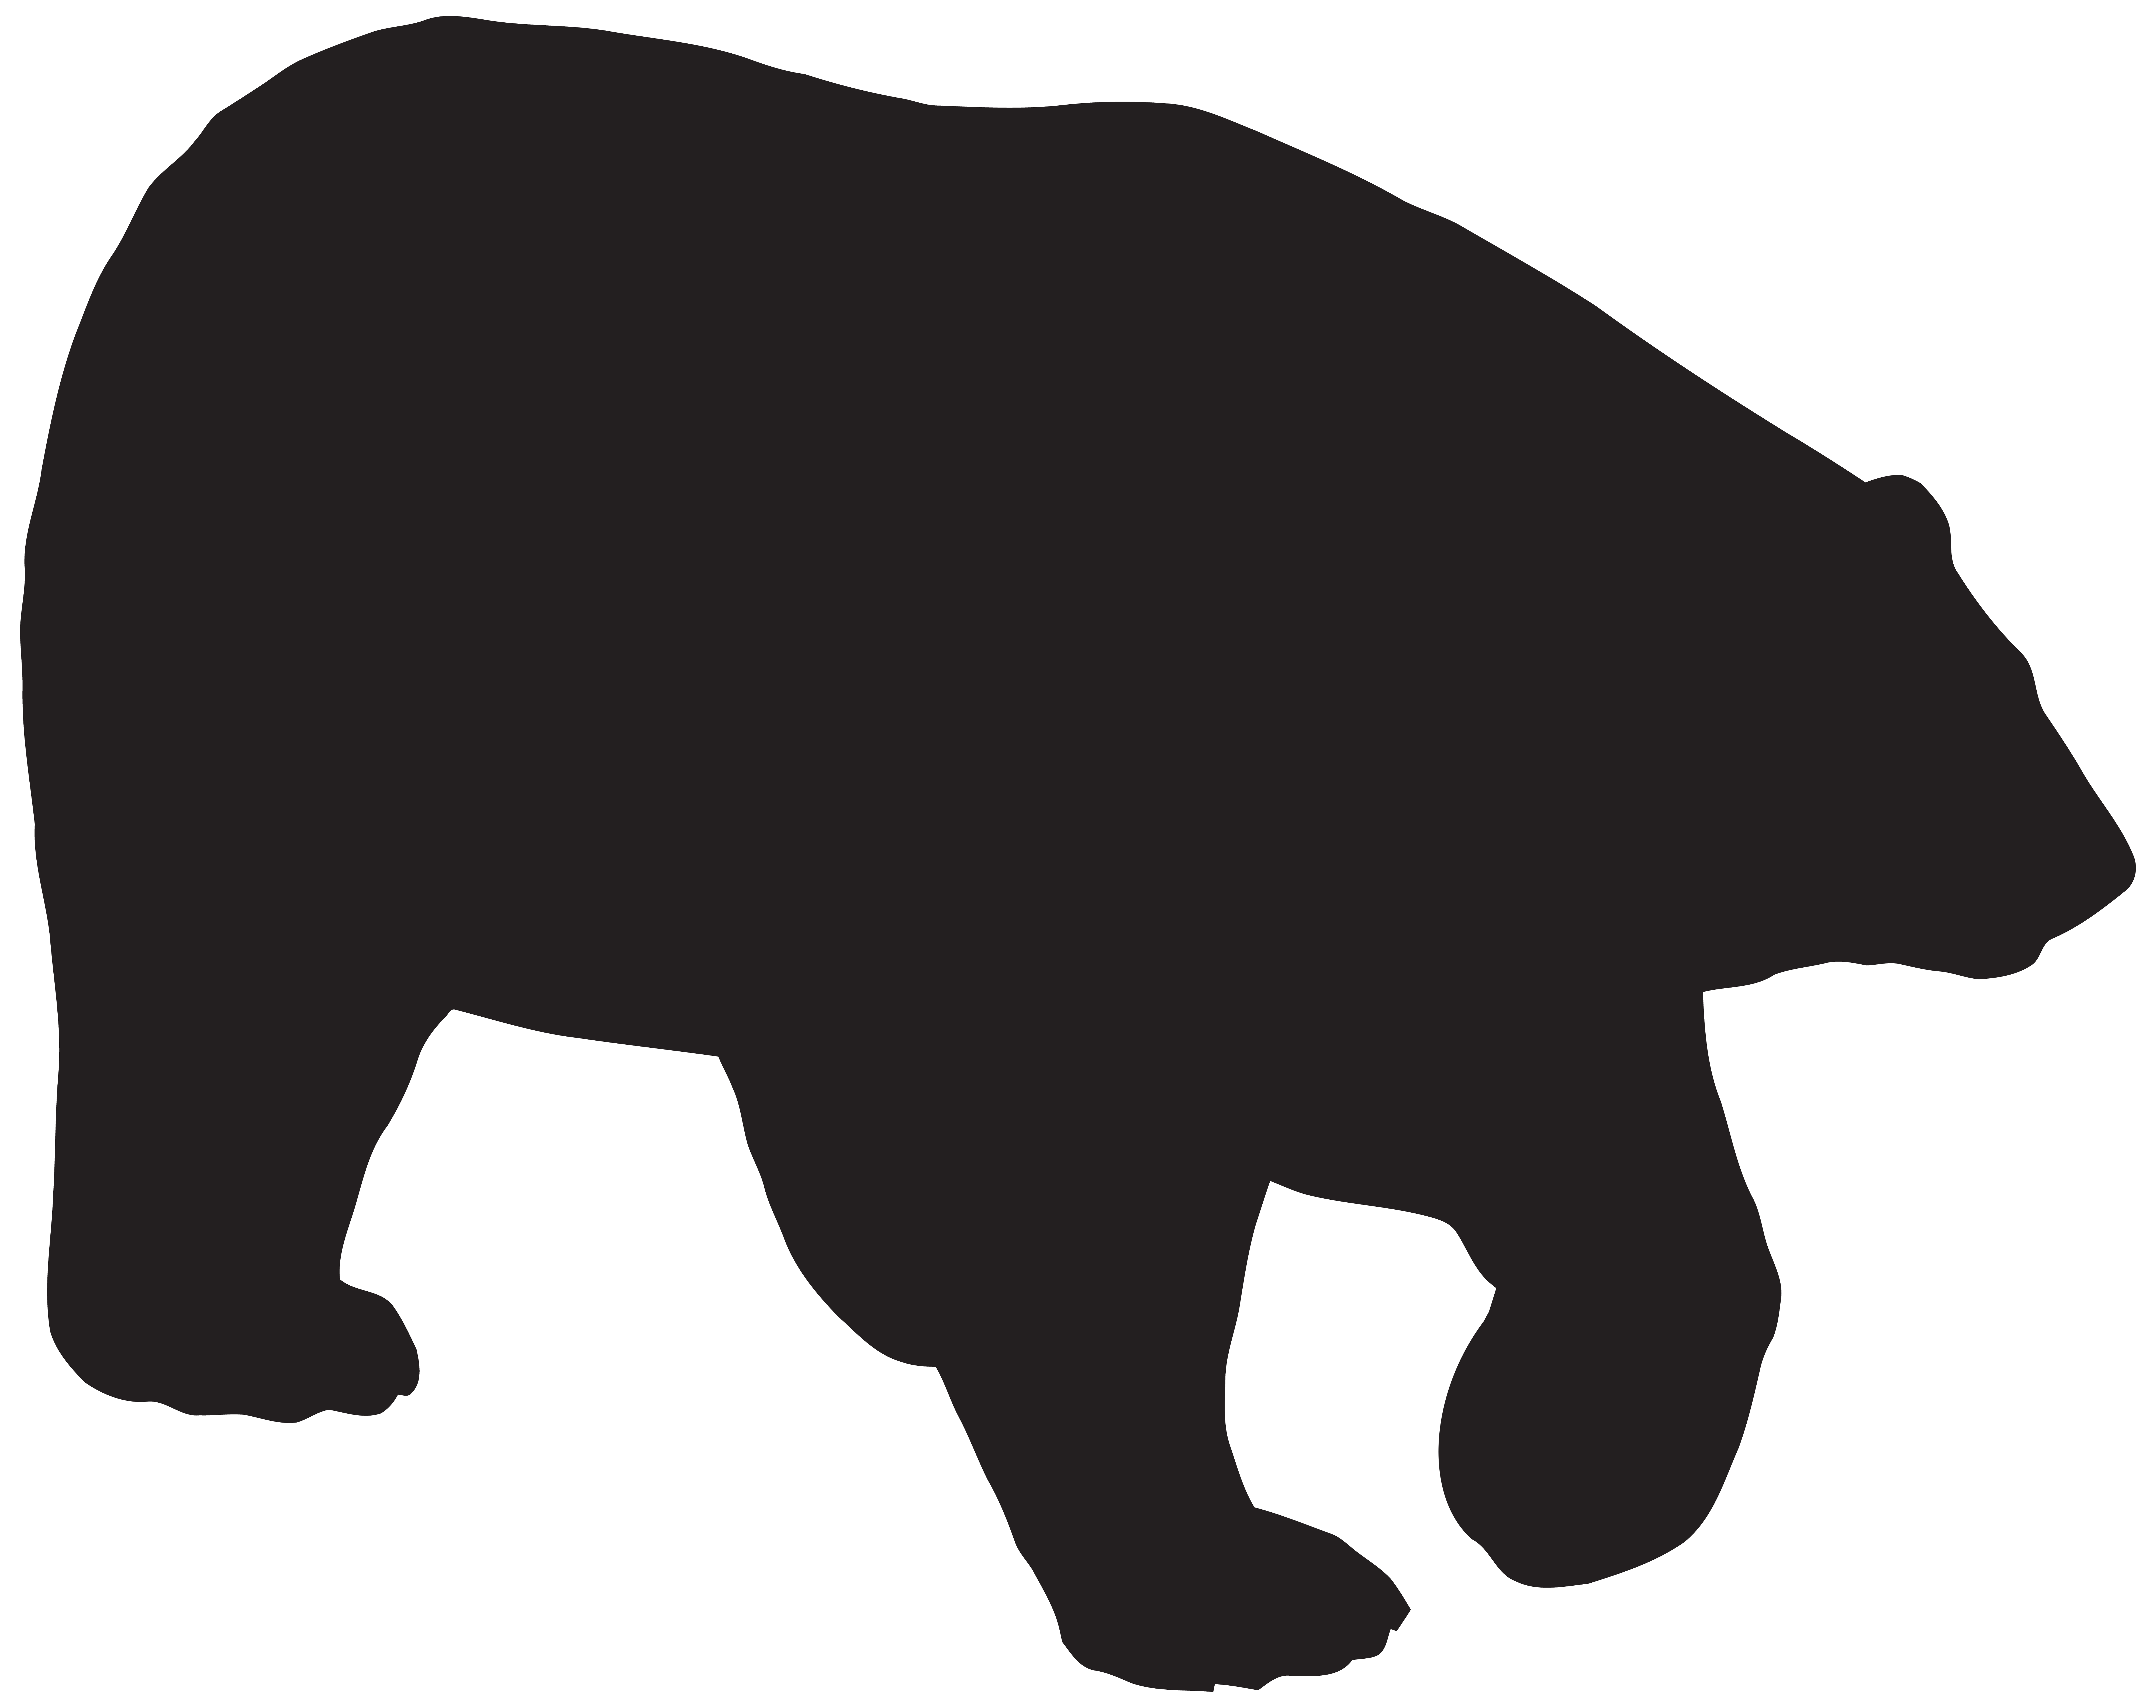 bear silhouette png